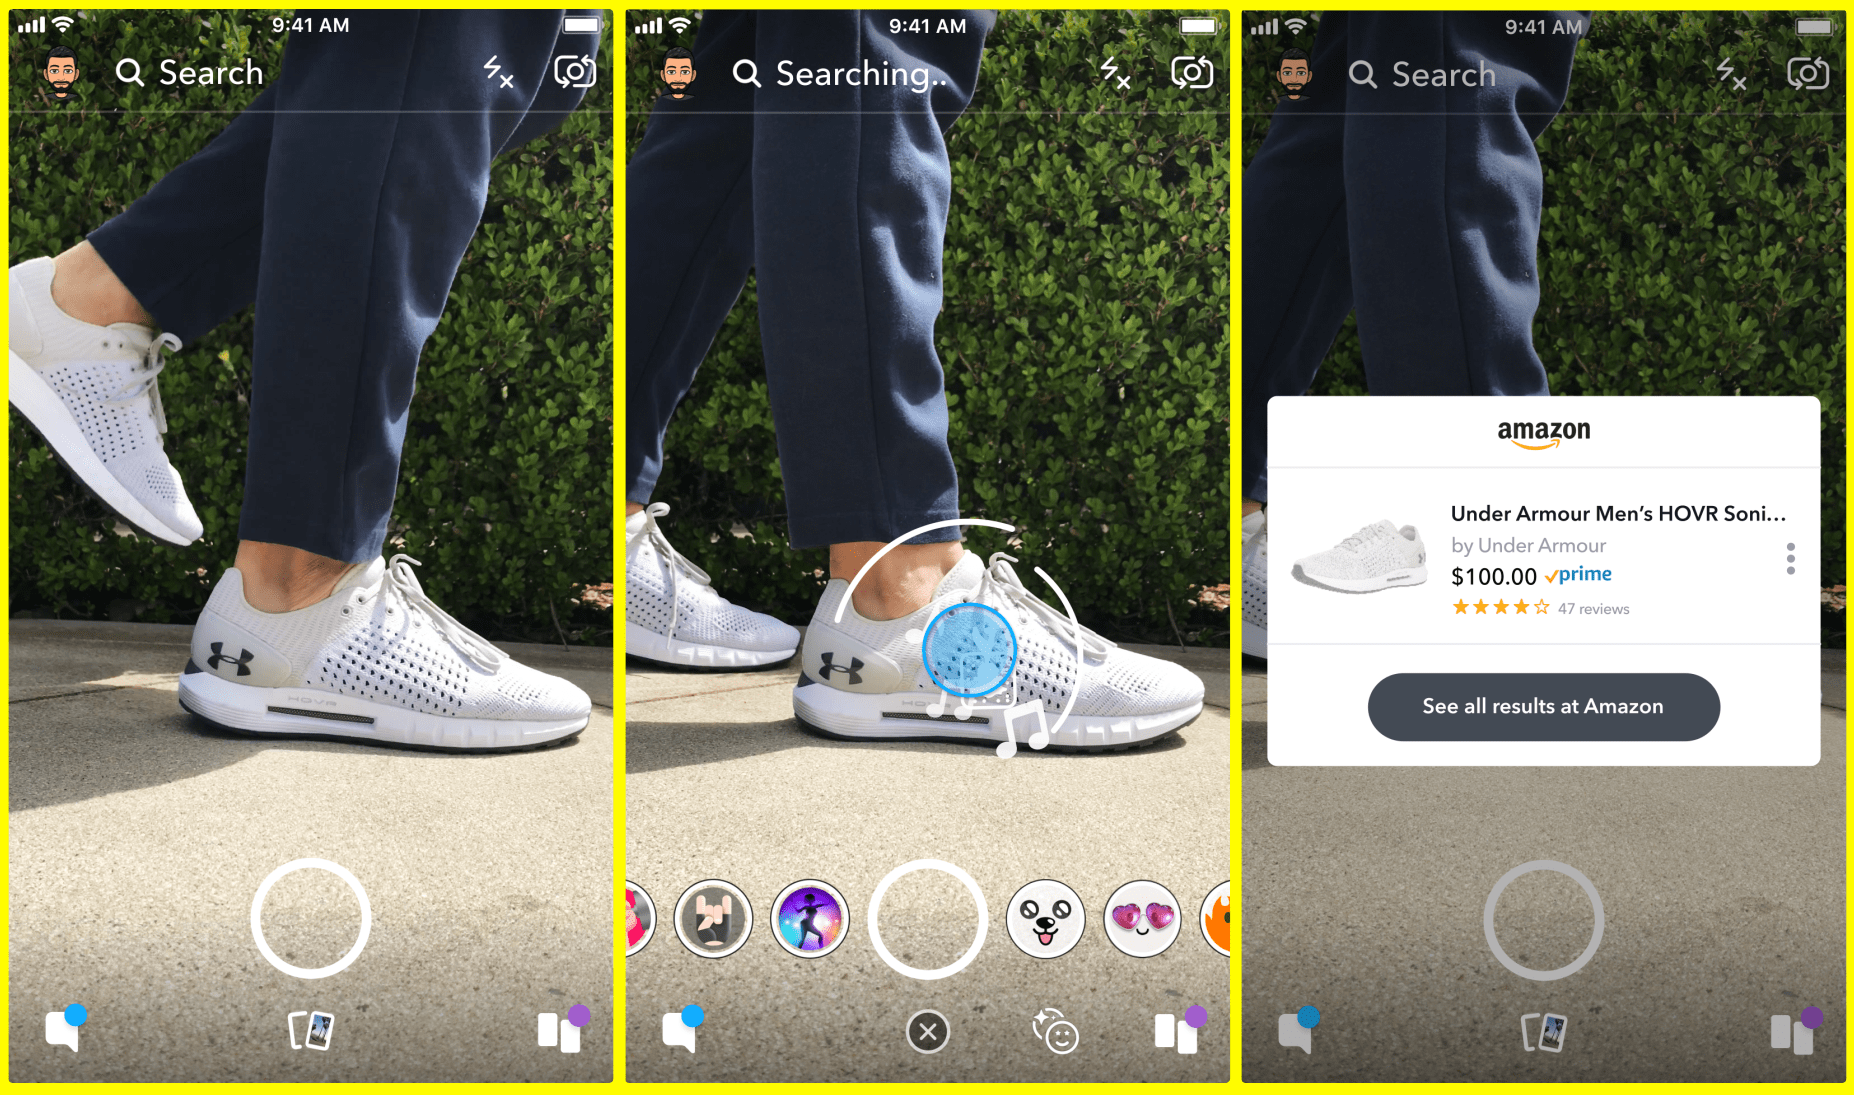 20c87f13f6a82 Snapchat will let you shop on Amazon using its camera